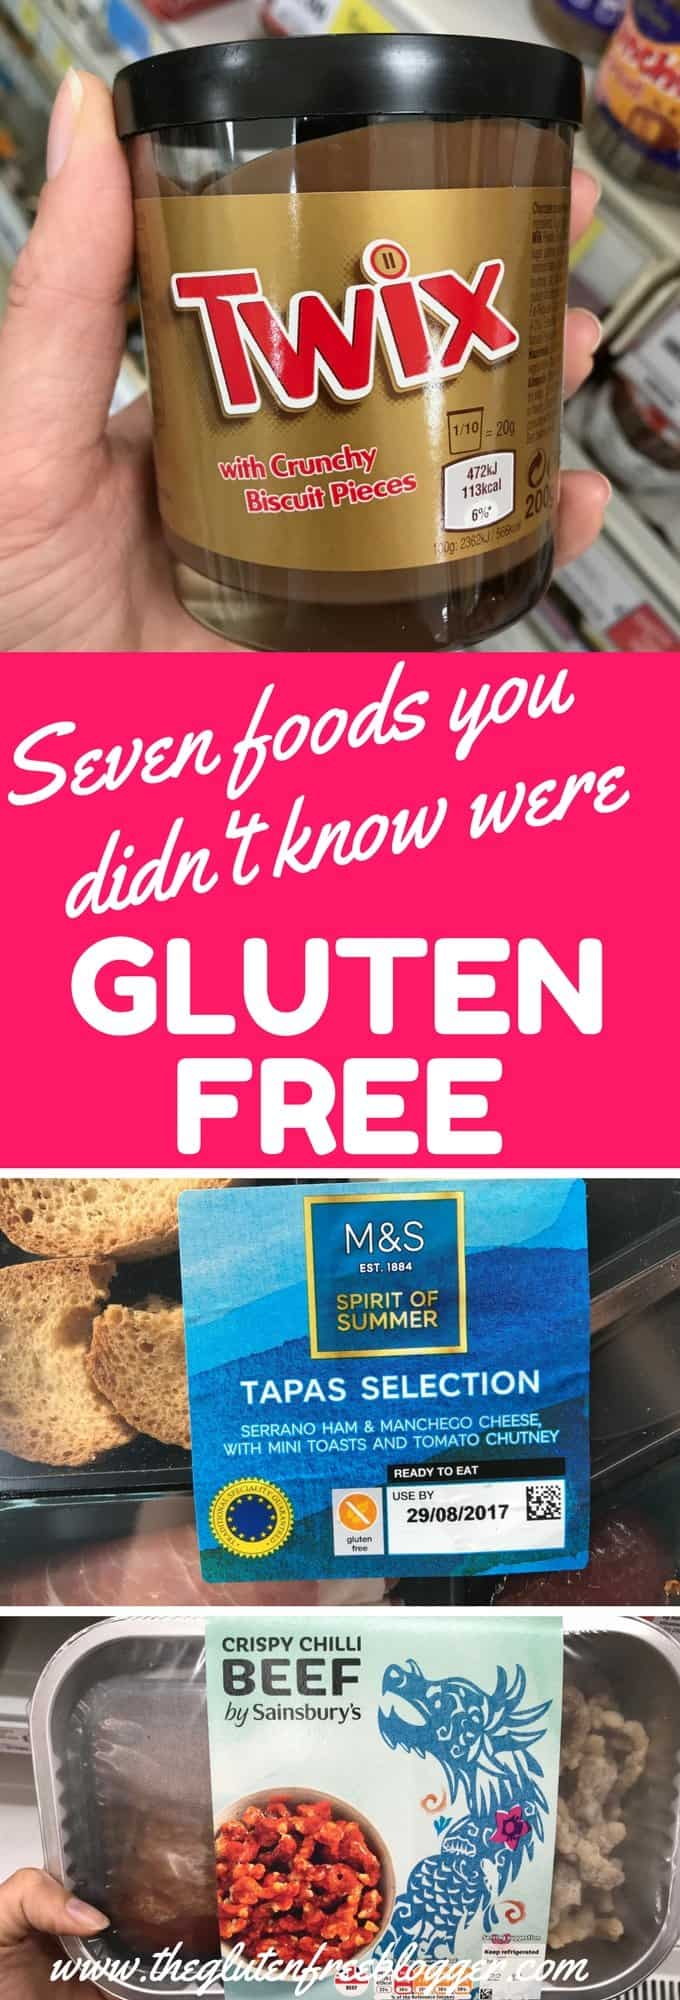 Seven foods you didn't know were gluten free in the UK by The Gluten Free Blogger - www.theglutenfreeblogger.com